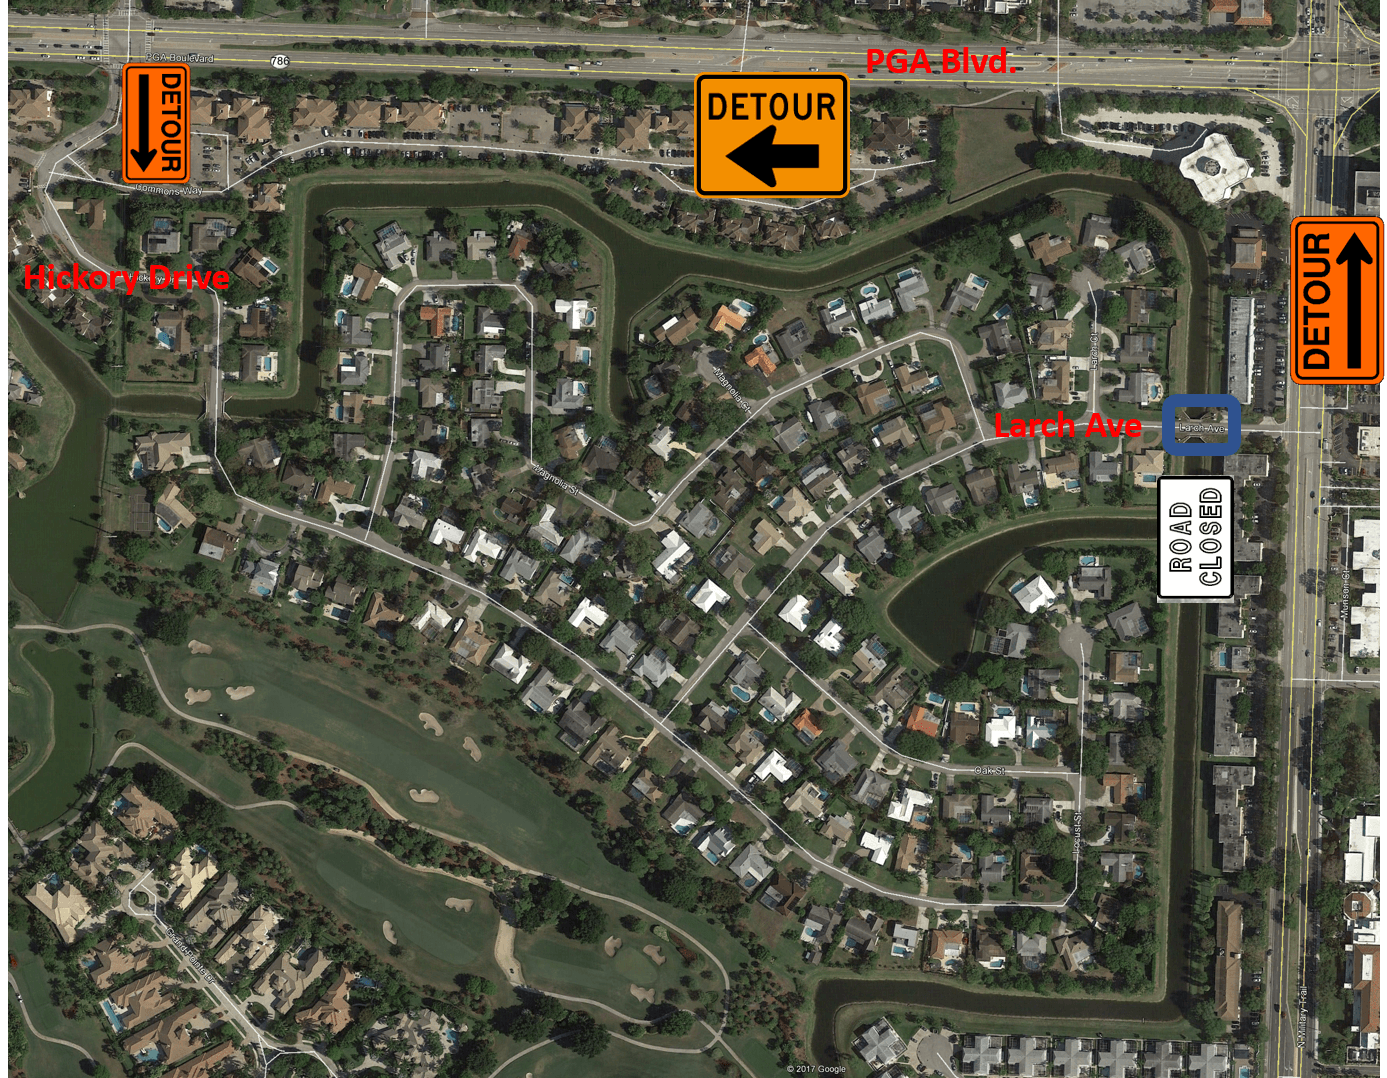 Larch Avenue Bridge Closure